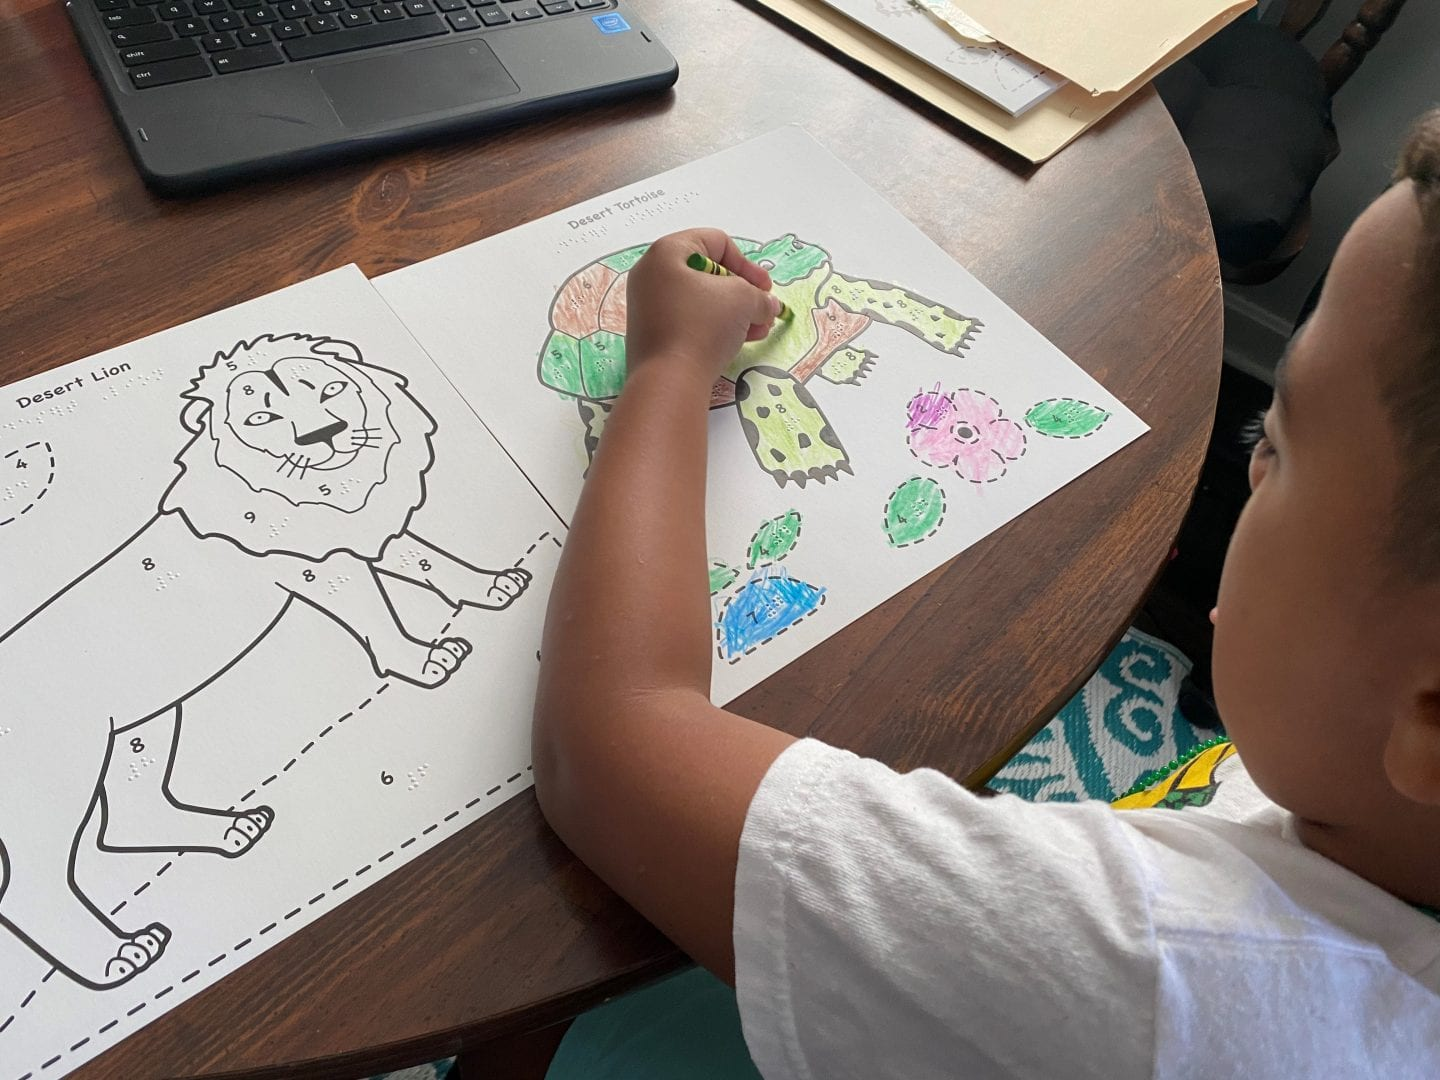 a young child sitting at a table coloring the black outlined tactile picture of a tortoise. A coloring page of a lion sits on the table beside him.